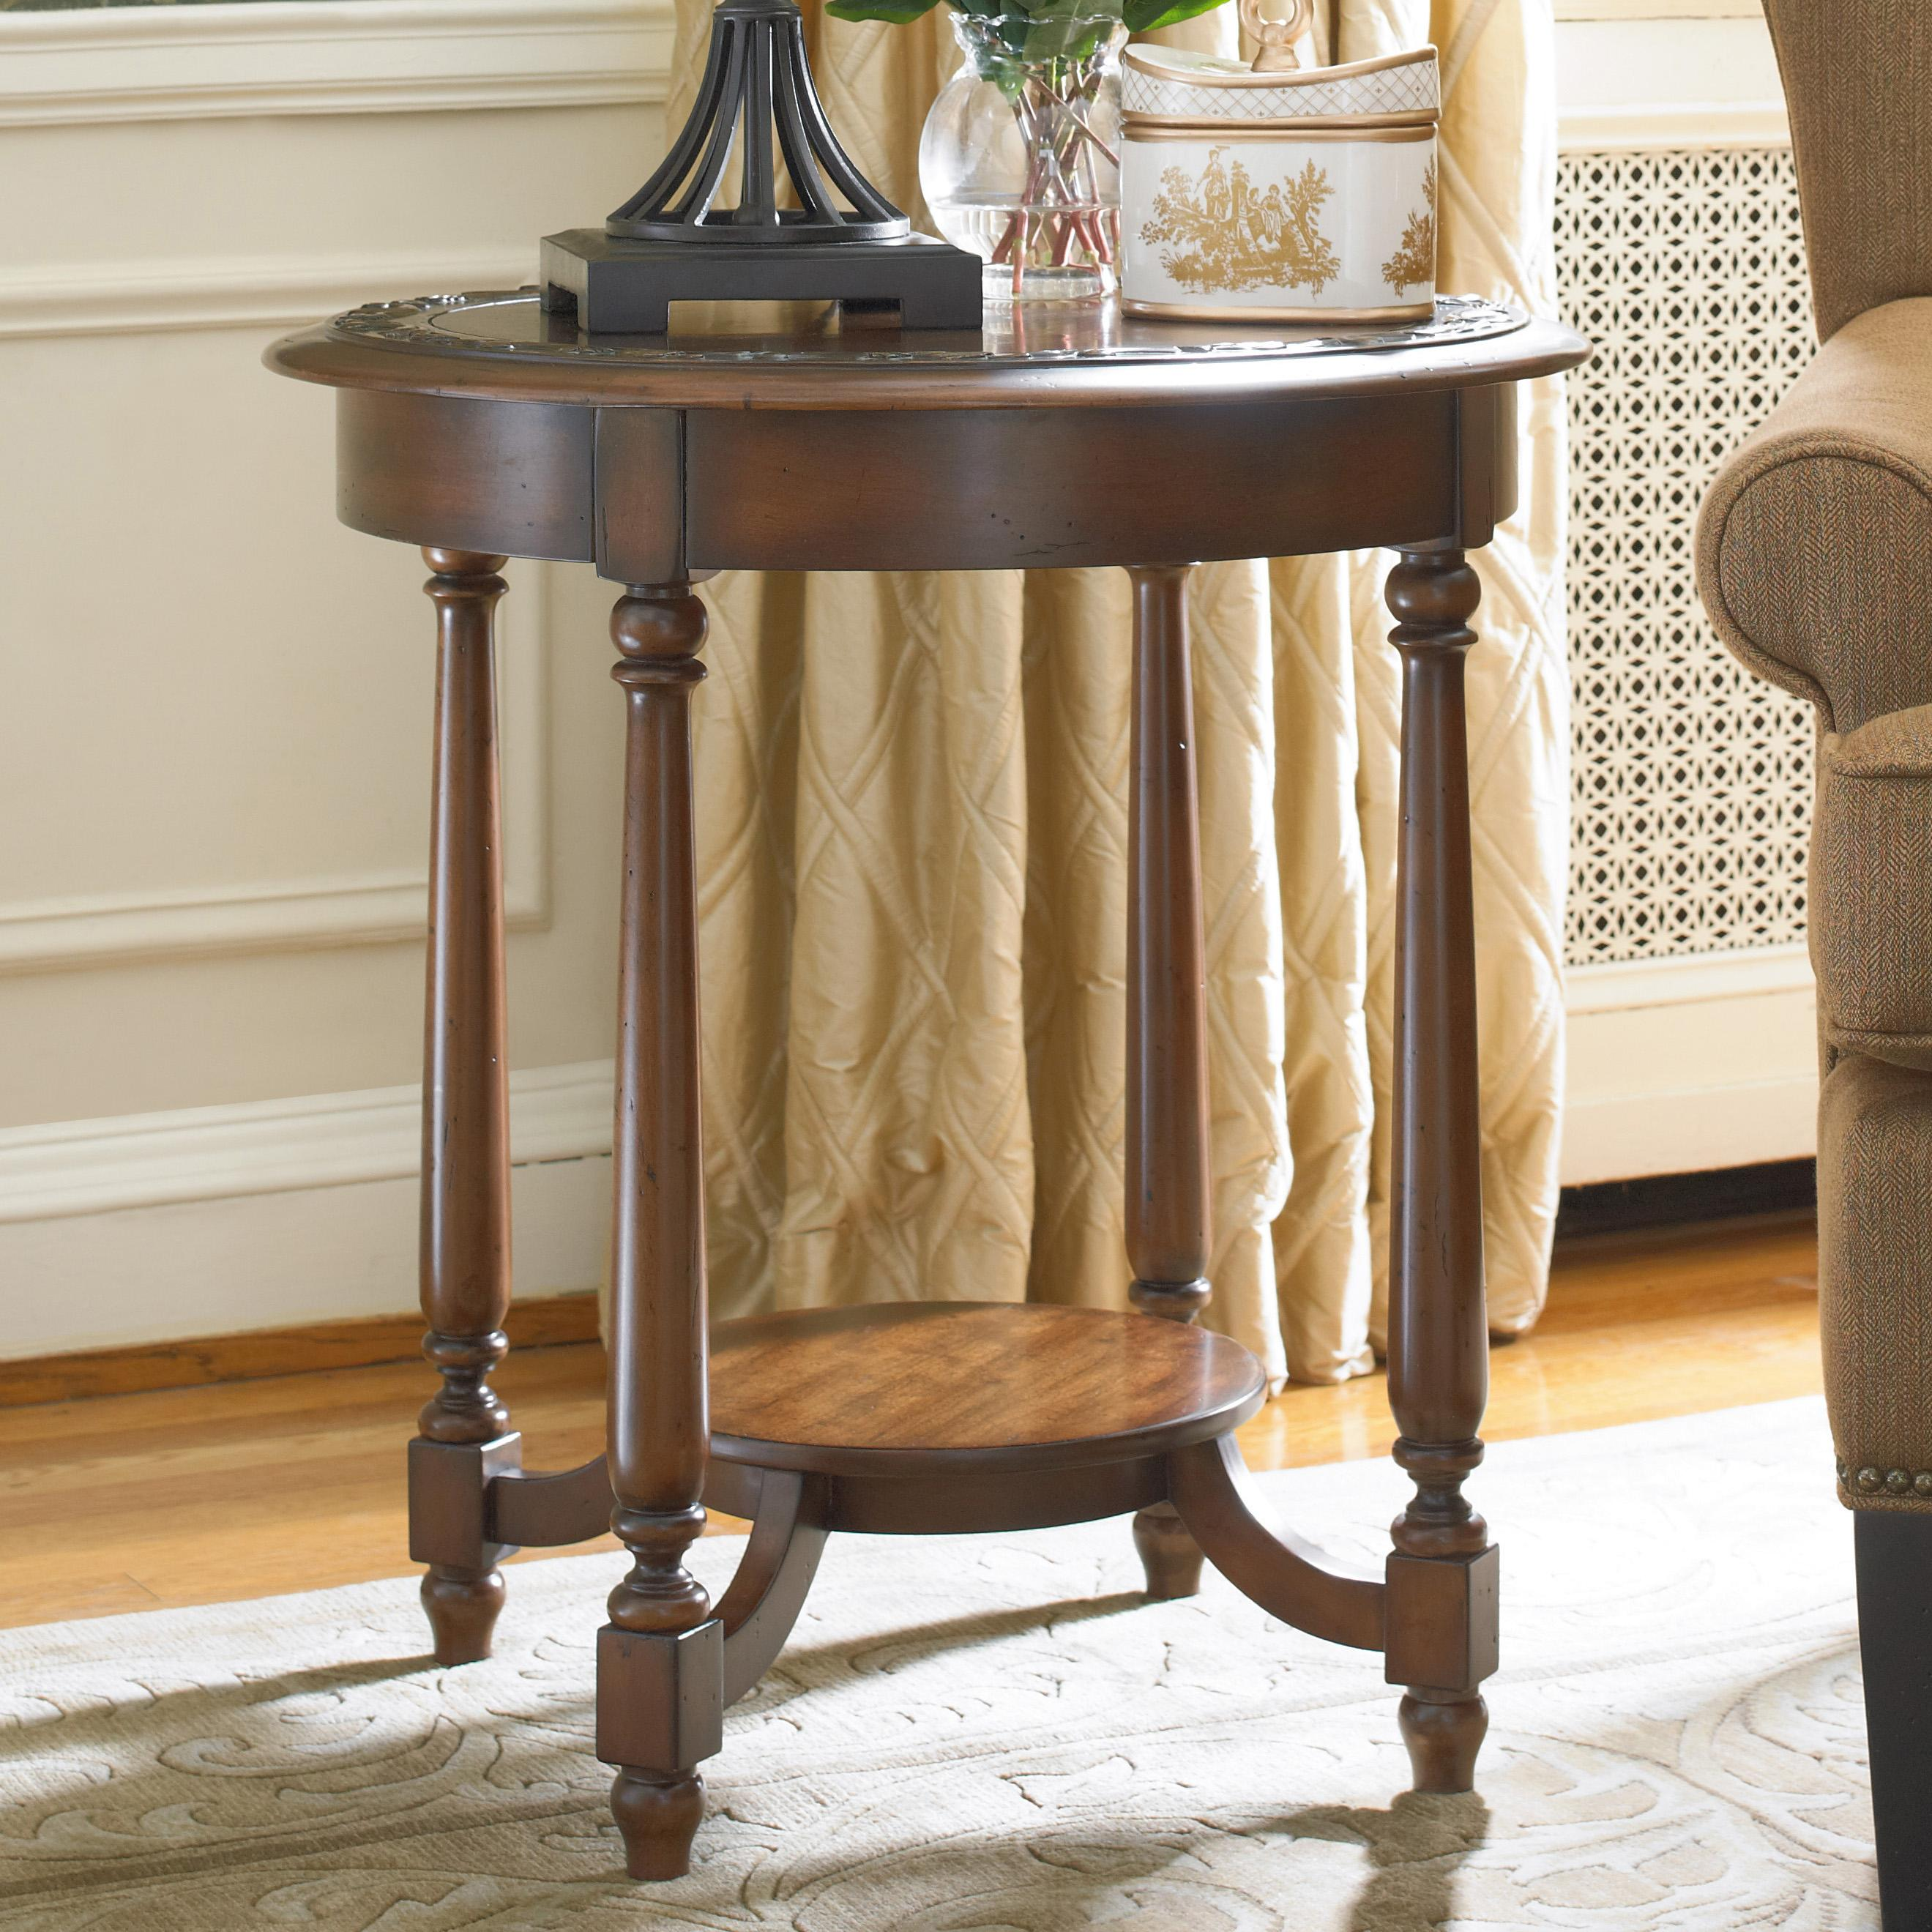 Hooker Furniture Living Room Accents Round Accent Table - Item Number: 500-50-829